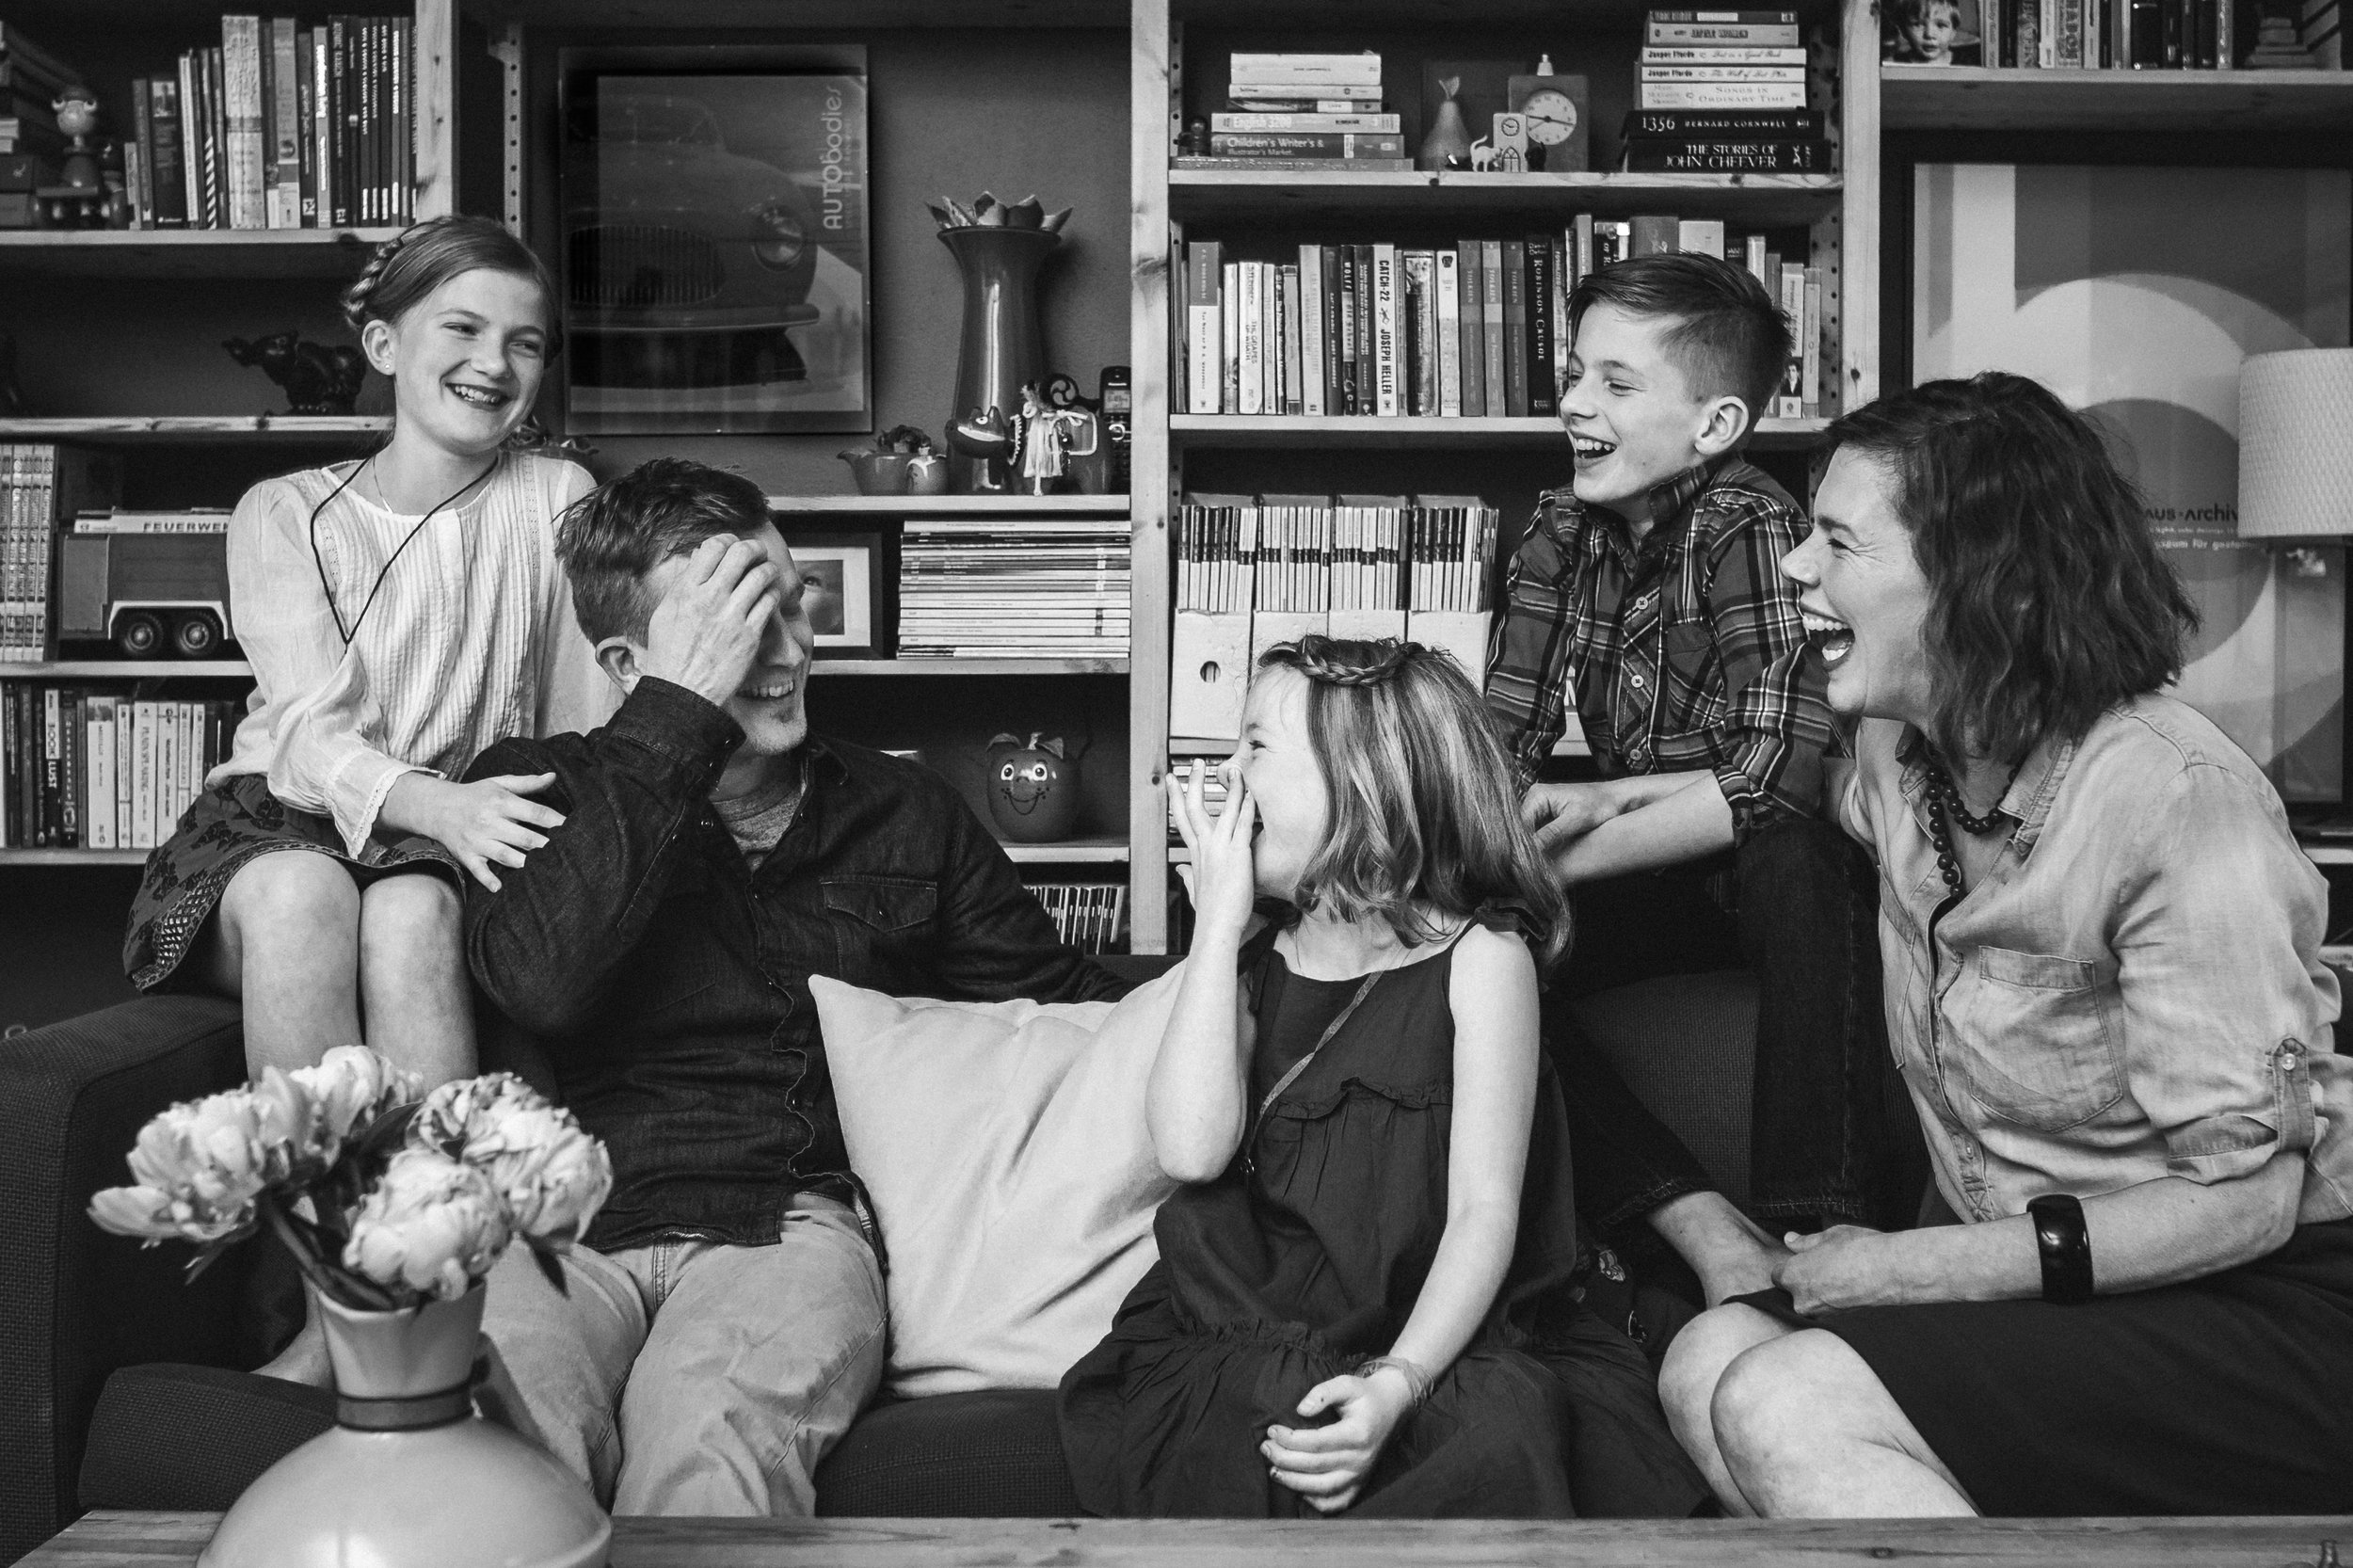 black and white family of 5 on couch in front of bookshelf laughing and looking at each other